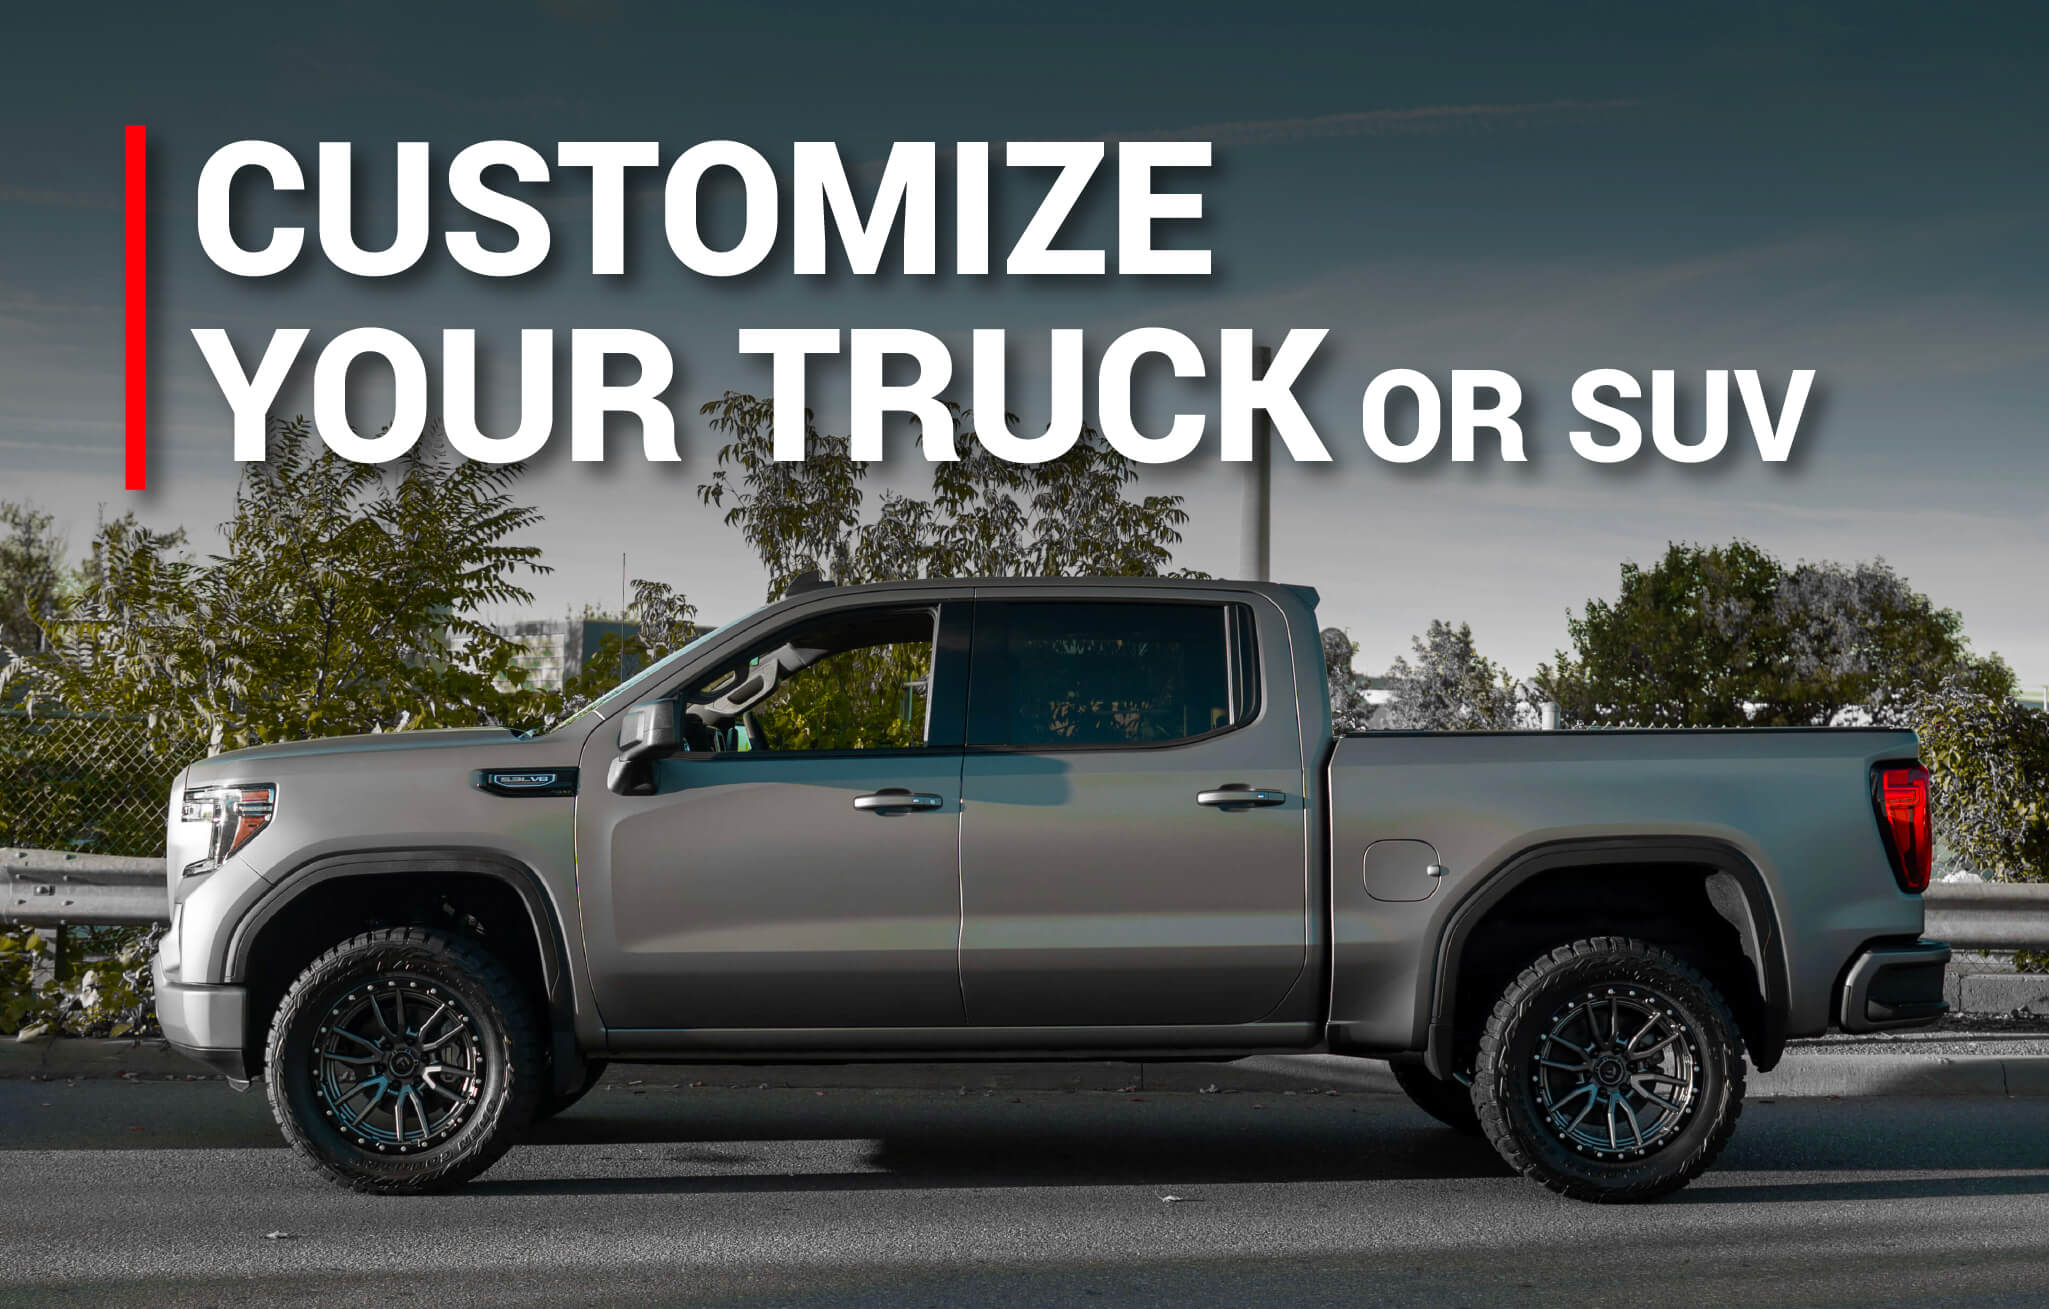 Customize Your Truck or SUV